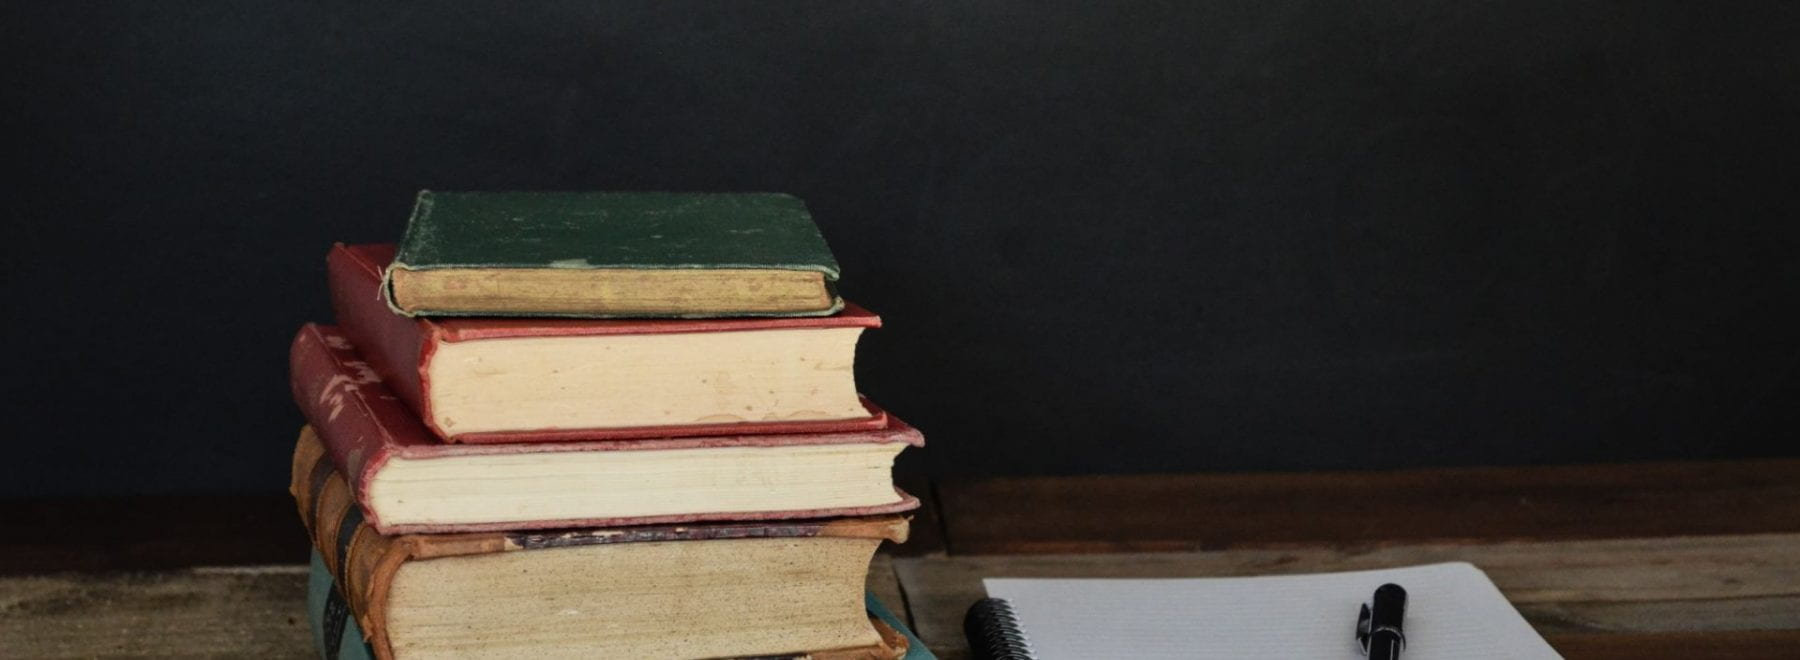 Stack of books on a desk next to an open notebook